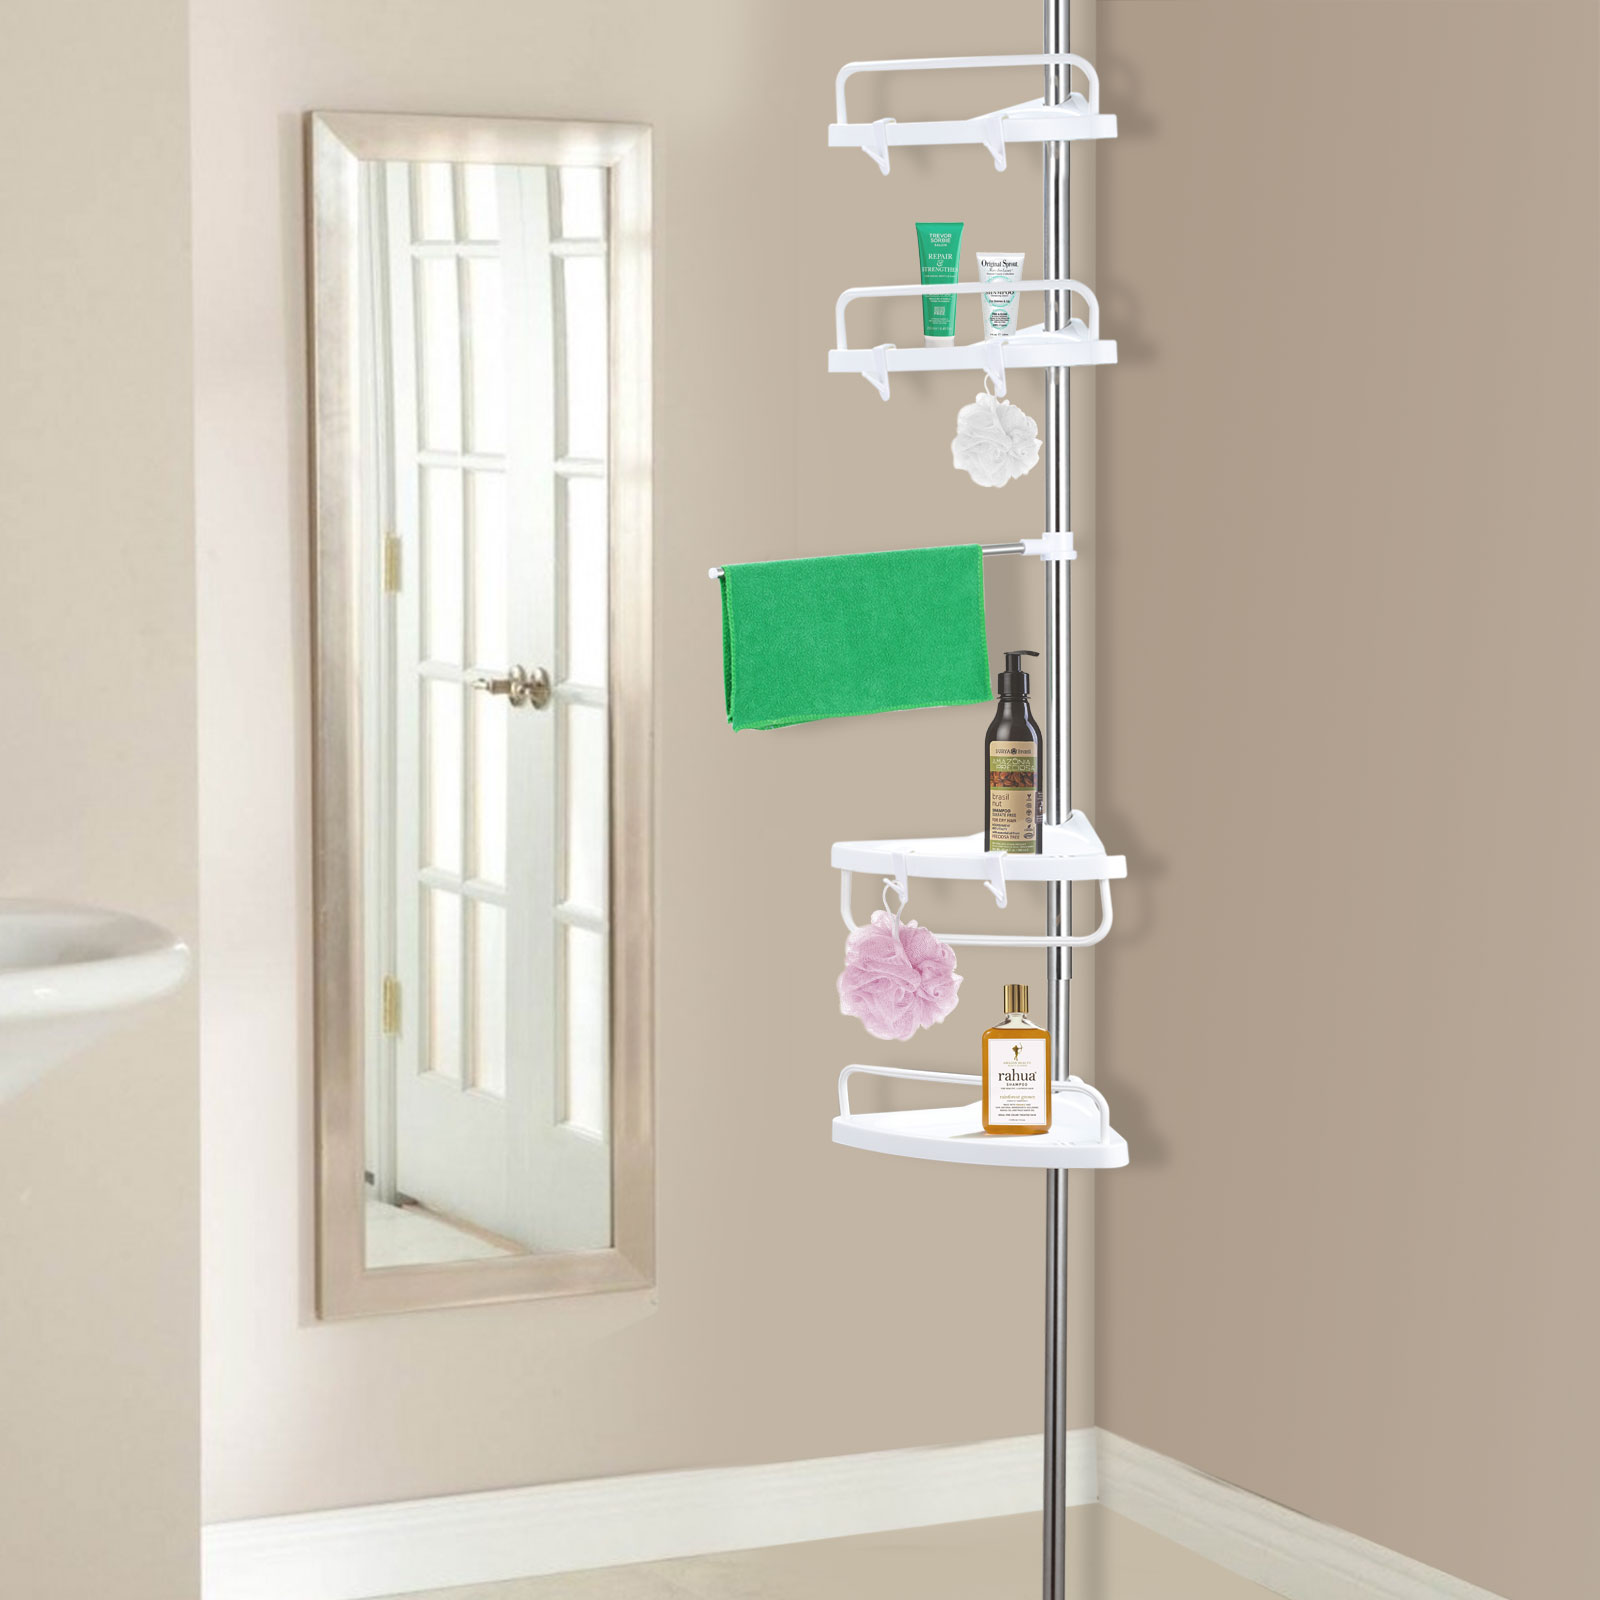 Bathroom Caddy Telescopic Bathroom Shelf Bath Corner Shower Rack Caddy